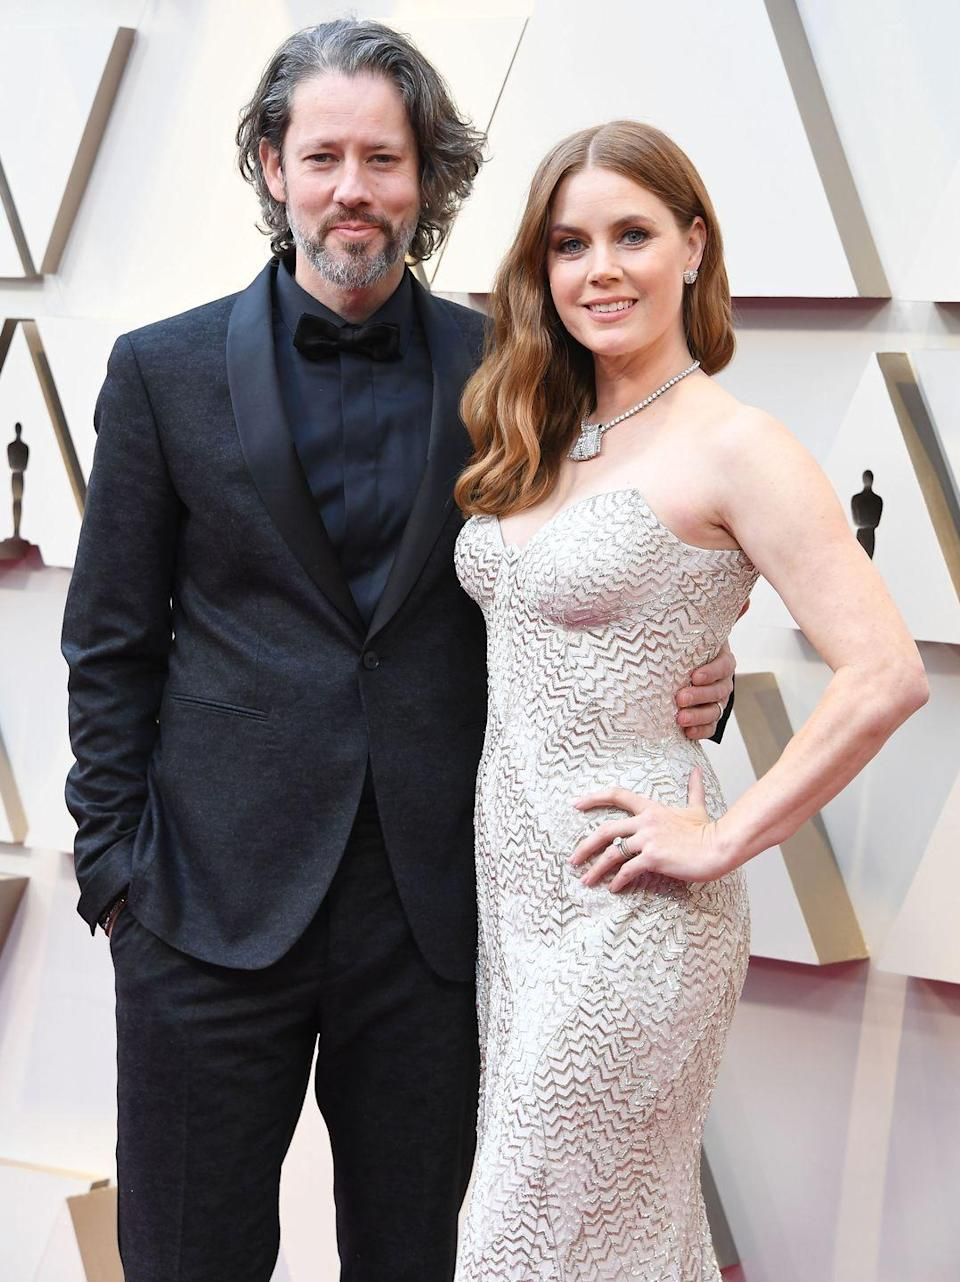 <p>Amy Adams remains happily married to her artist husband, Darren Le Gallo, however the couple is so private that most people don't even know they're a couple. They welcomed a daughter in 2010, and finally tied the knot in 2015 after dating for 14 years and being engaged for seven of them.</p>